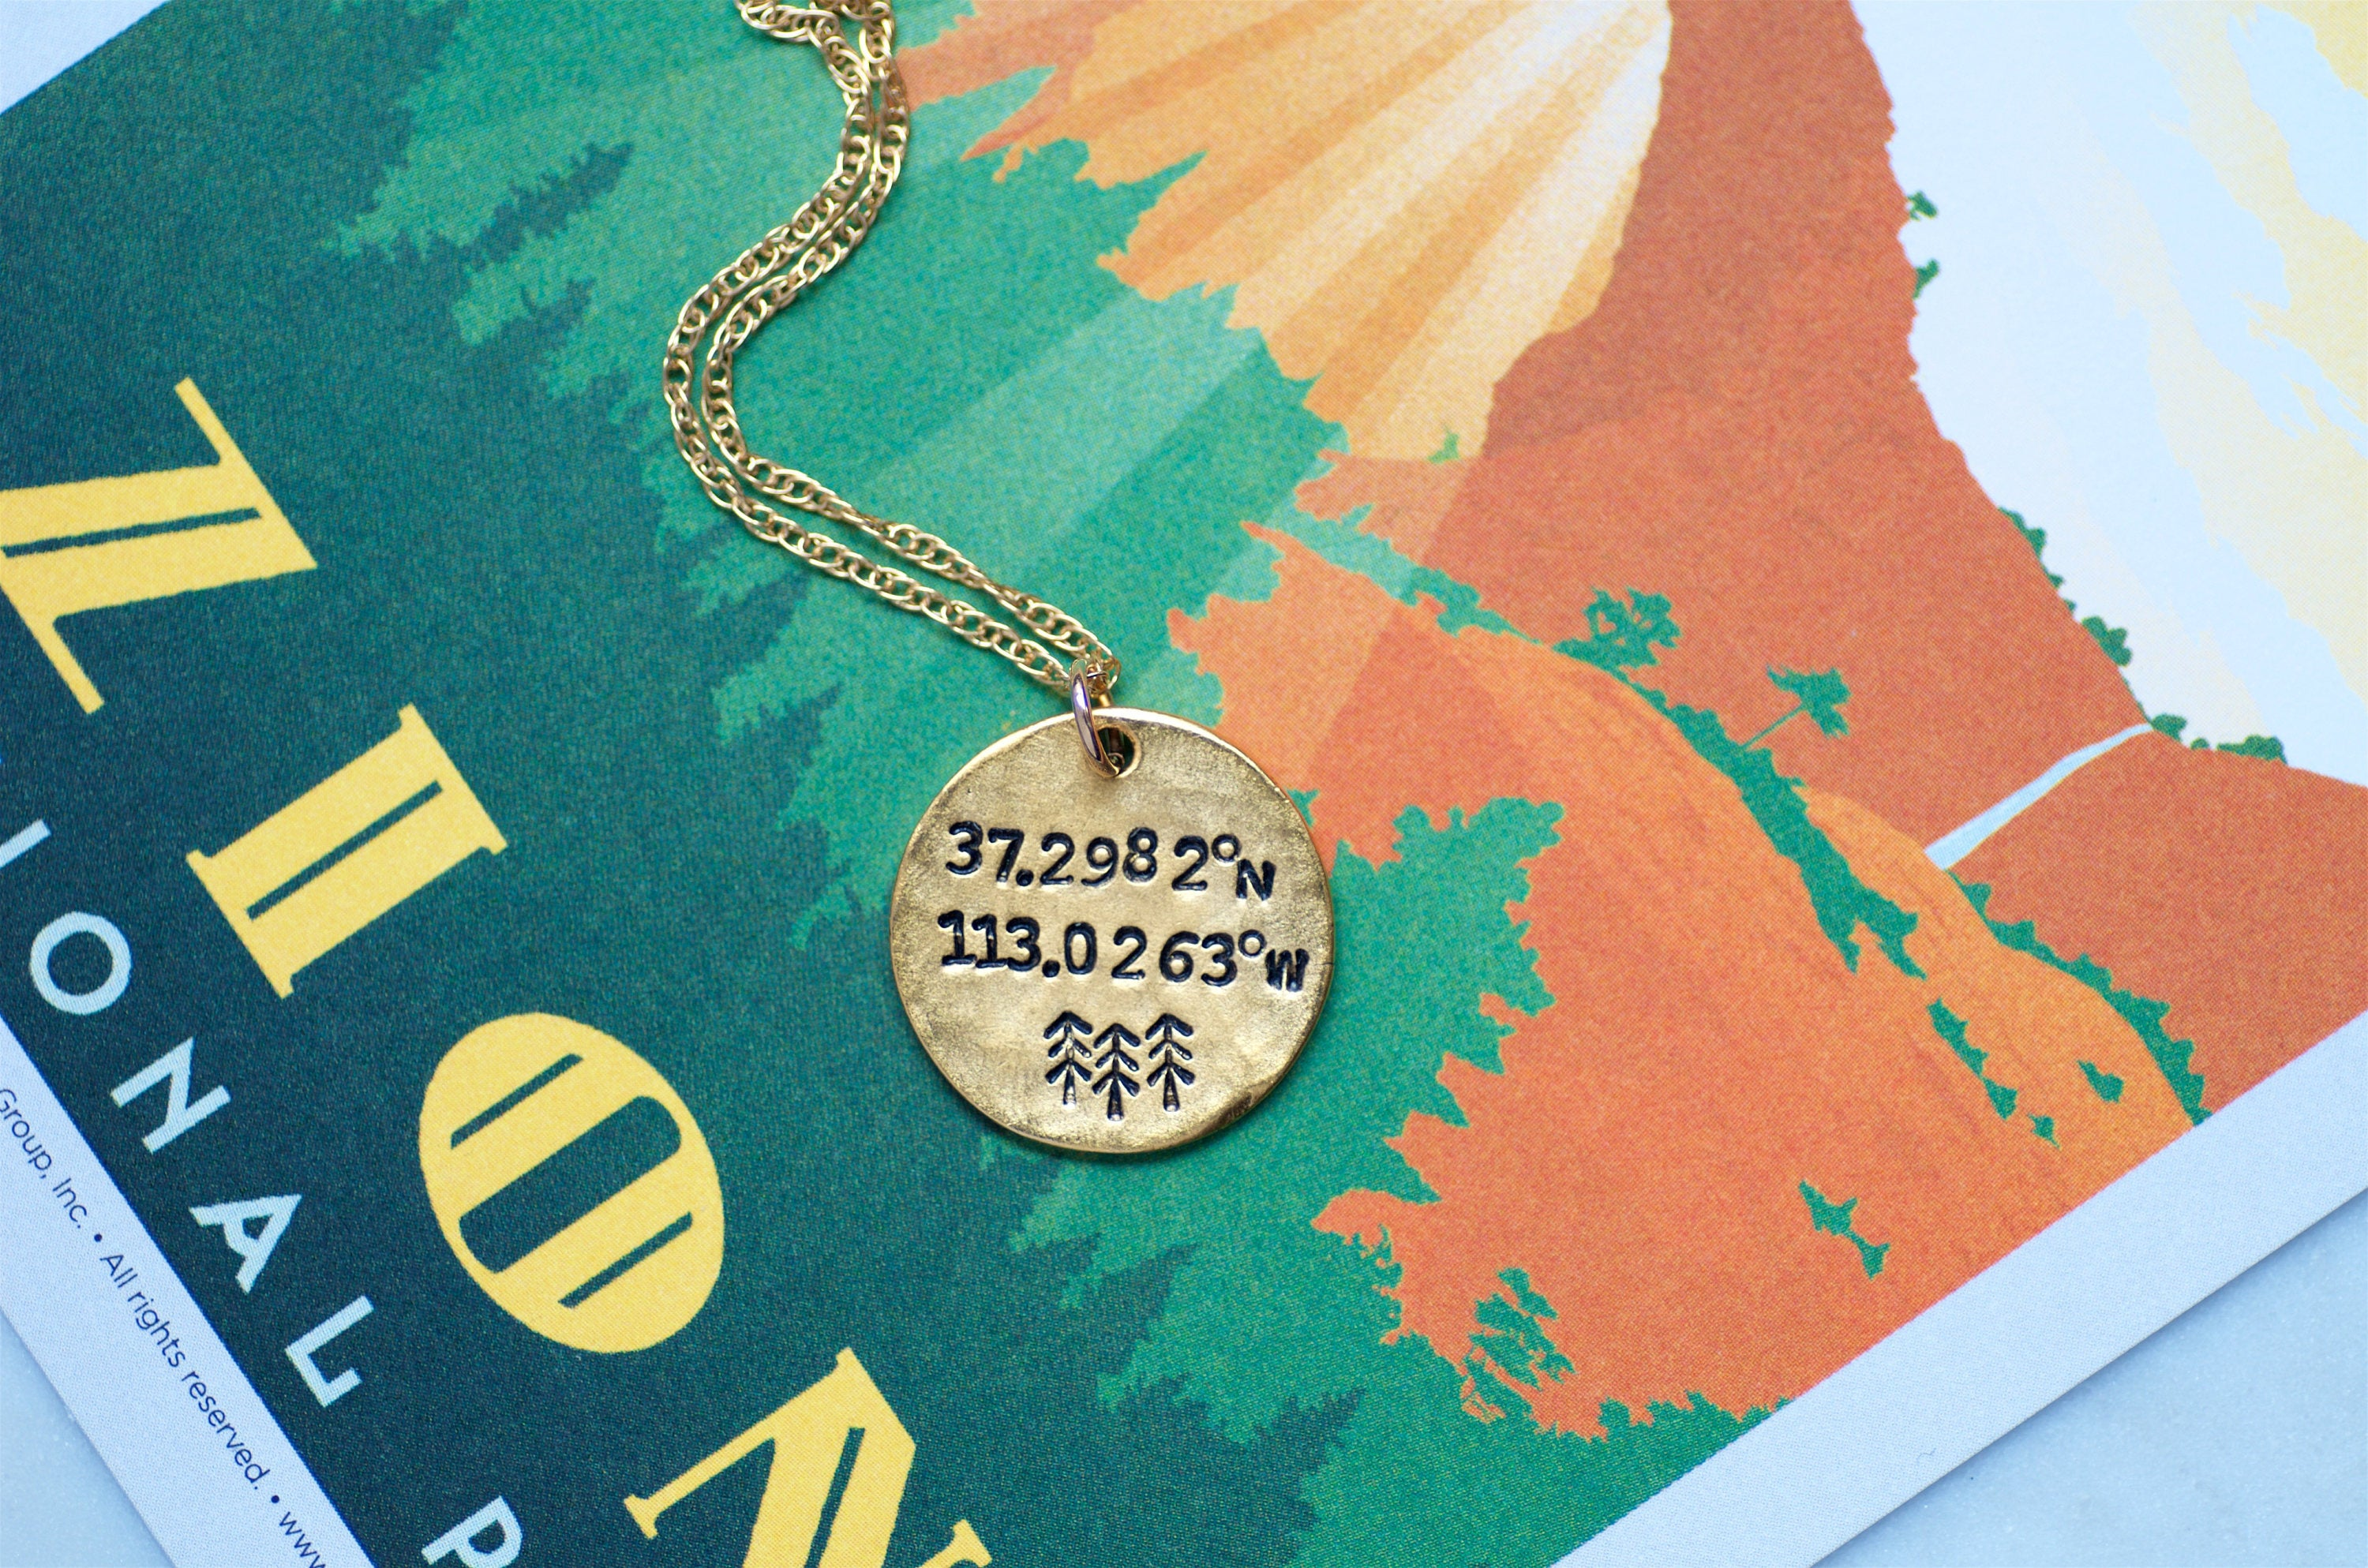 Zion National Park Longitude Latitude Necklace by Olive Bella.  Shop now: https://olivebella.com